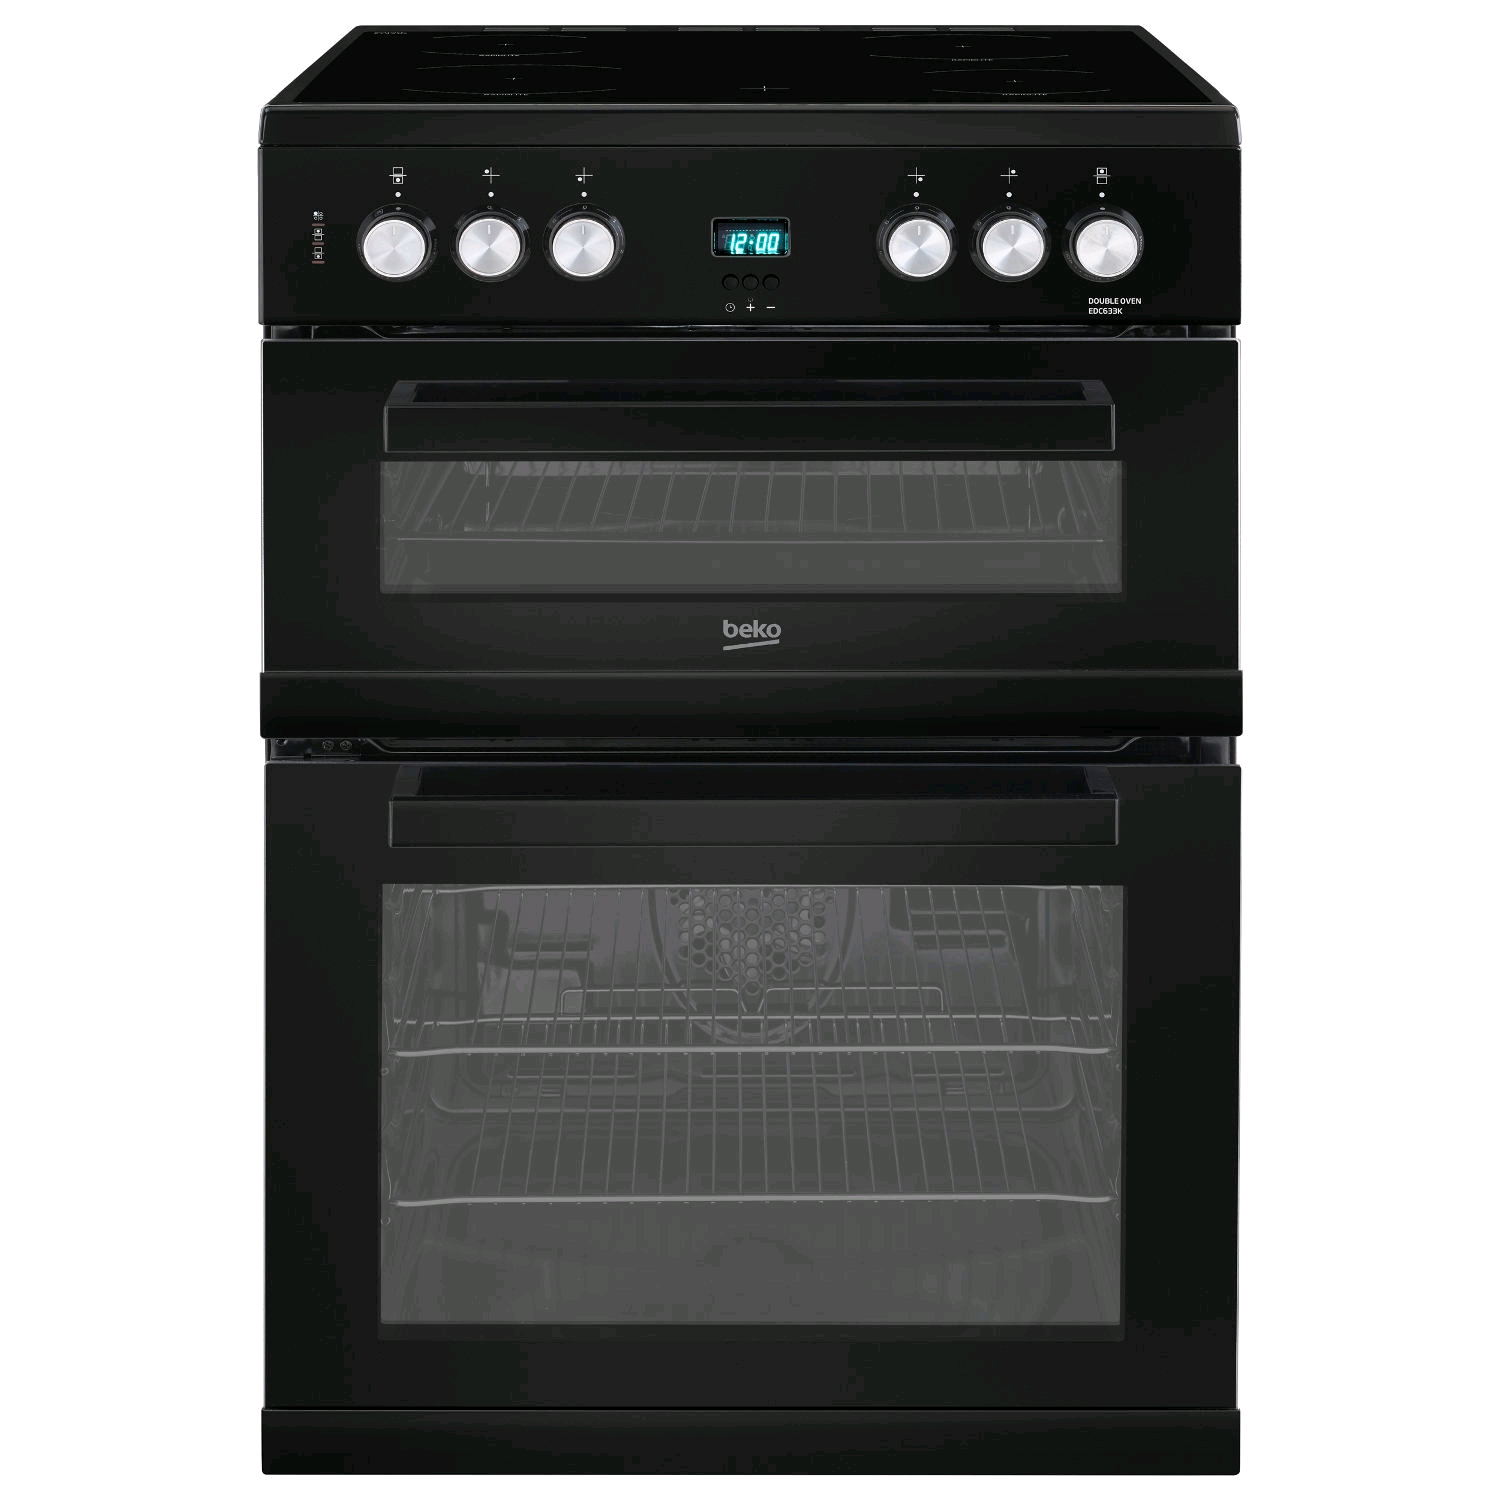 Beko Double Oven Electric Cooker Black Ceramic Hob 60cm